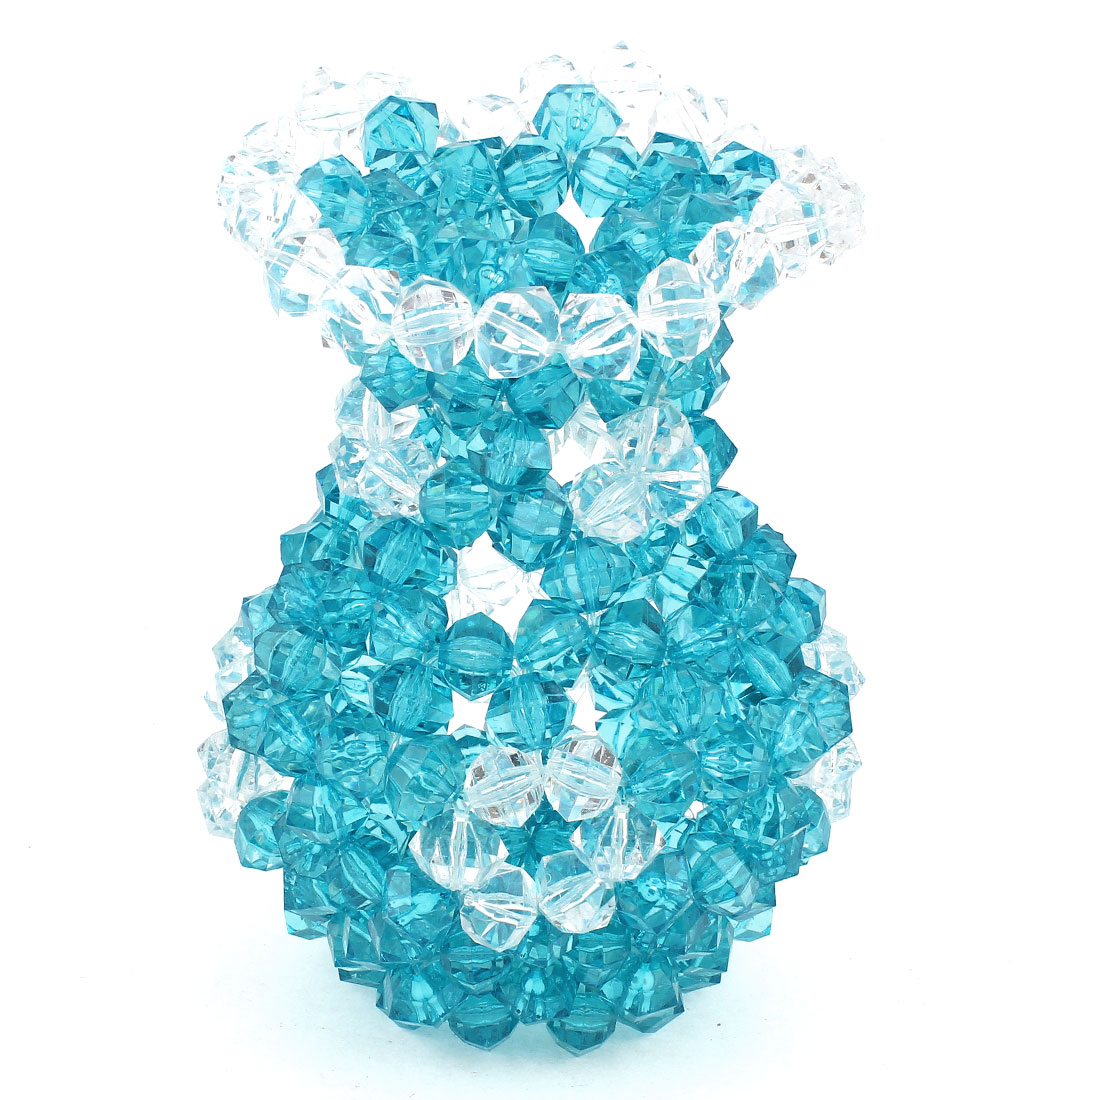 Aquamarine Clear Room Decoration Handcraft Acrylic Beads Faux Crystal Vase 7.1""